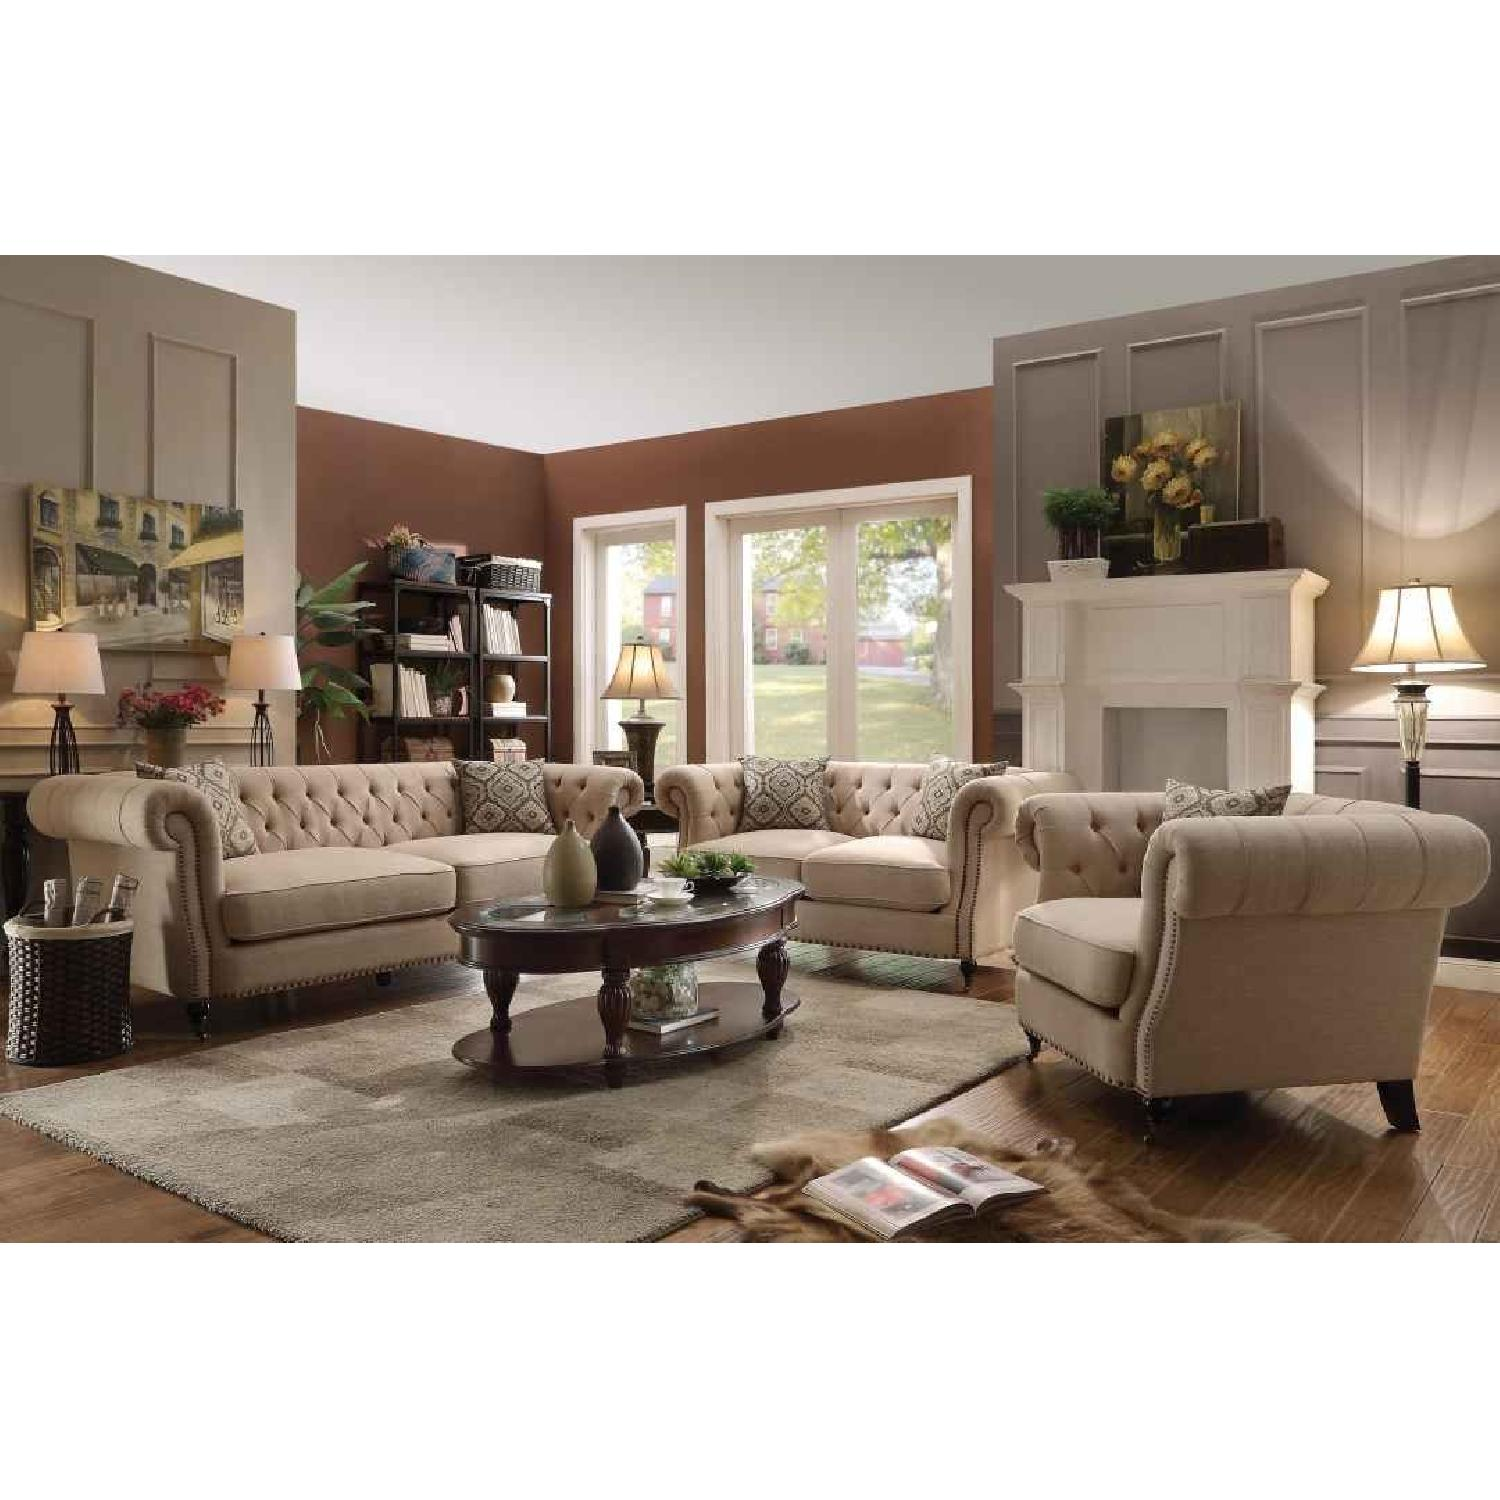 Wotj Tufted Back Rolled Arms Sofa w/ Nailhead Accent - image-1